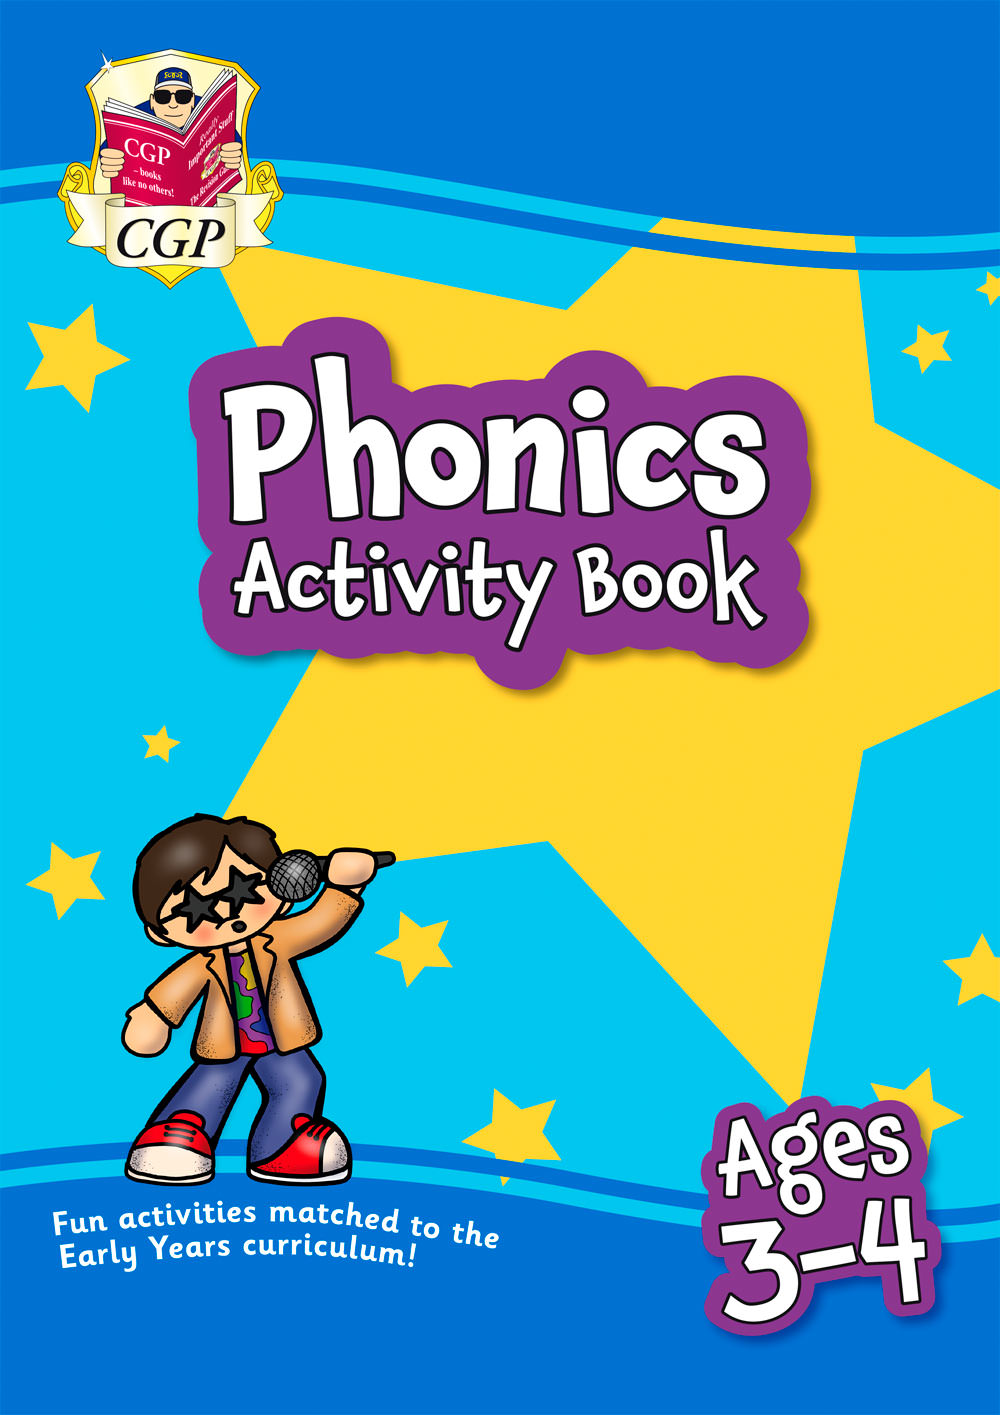 EPFEOQ01 - New Phonics Home Learning Activity Book for Ages 3-4